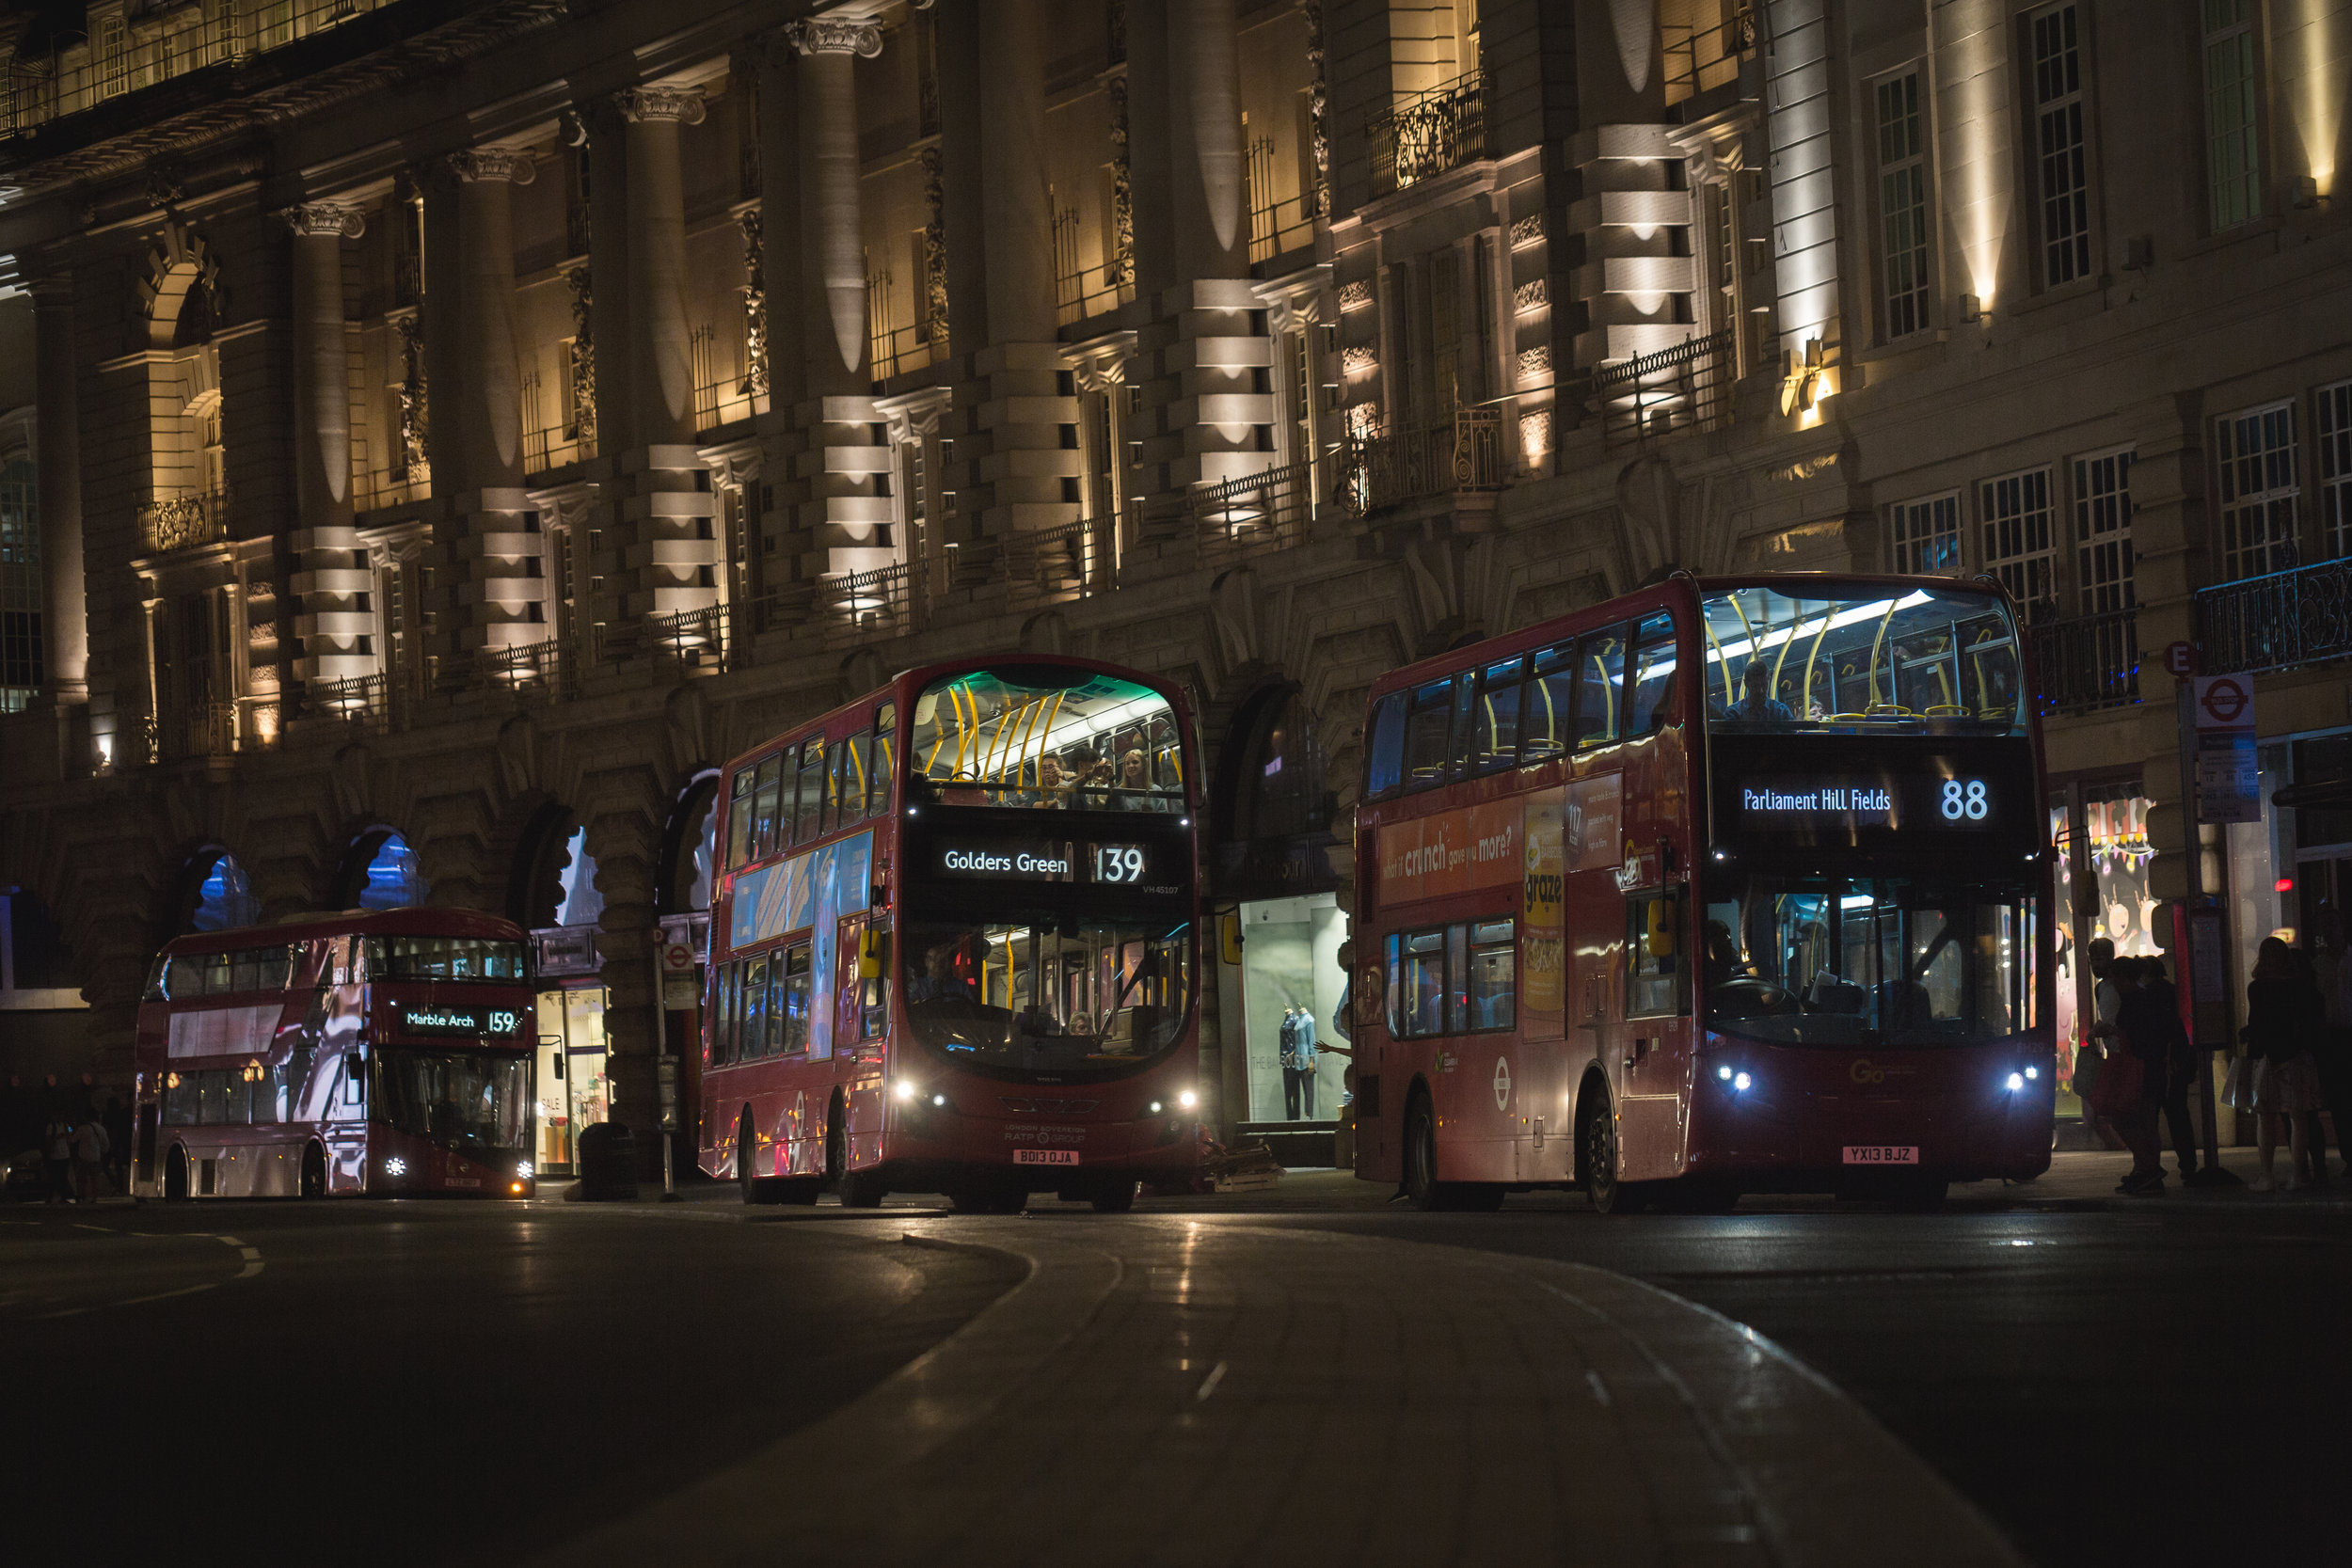 Fellows' transit passes give them unlimited access to public transportation in the city center, including via London's iconic and efficiency double-decker buses.